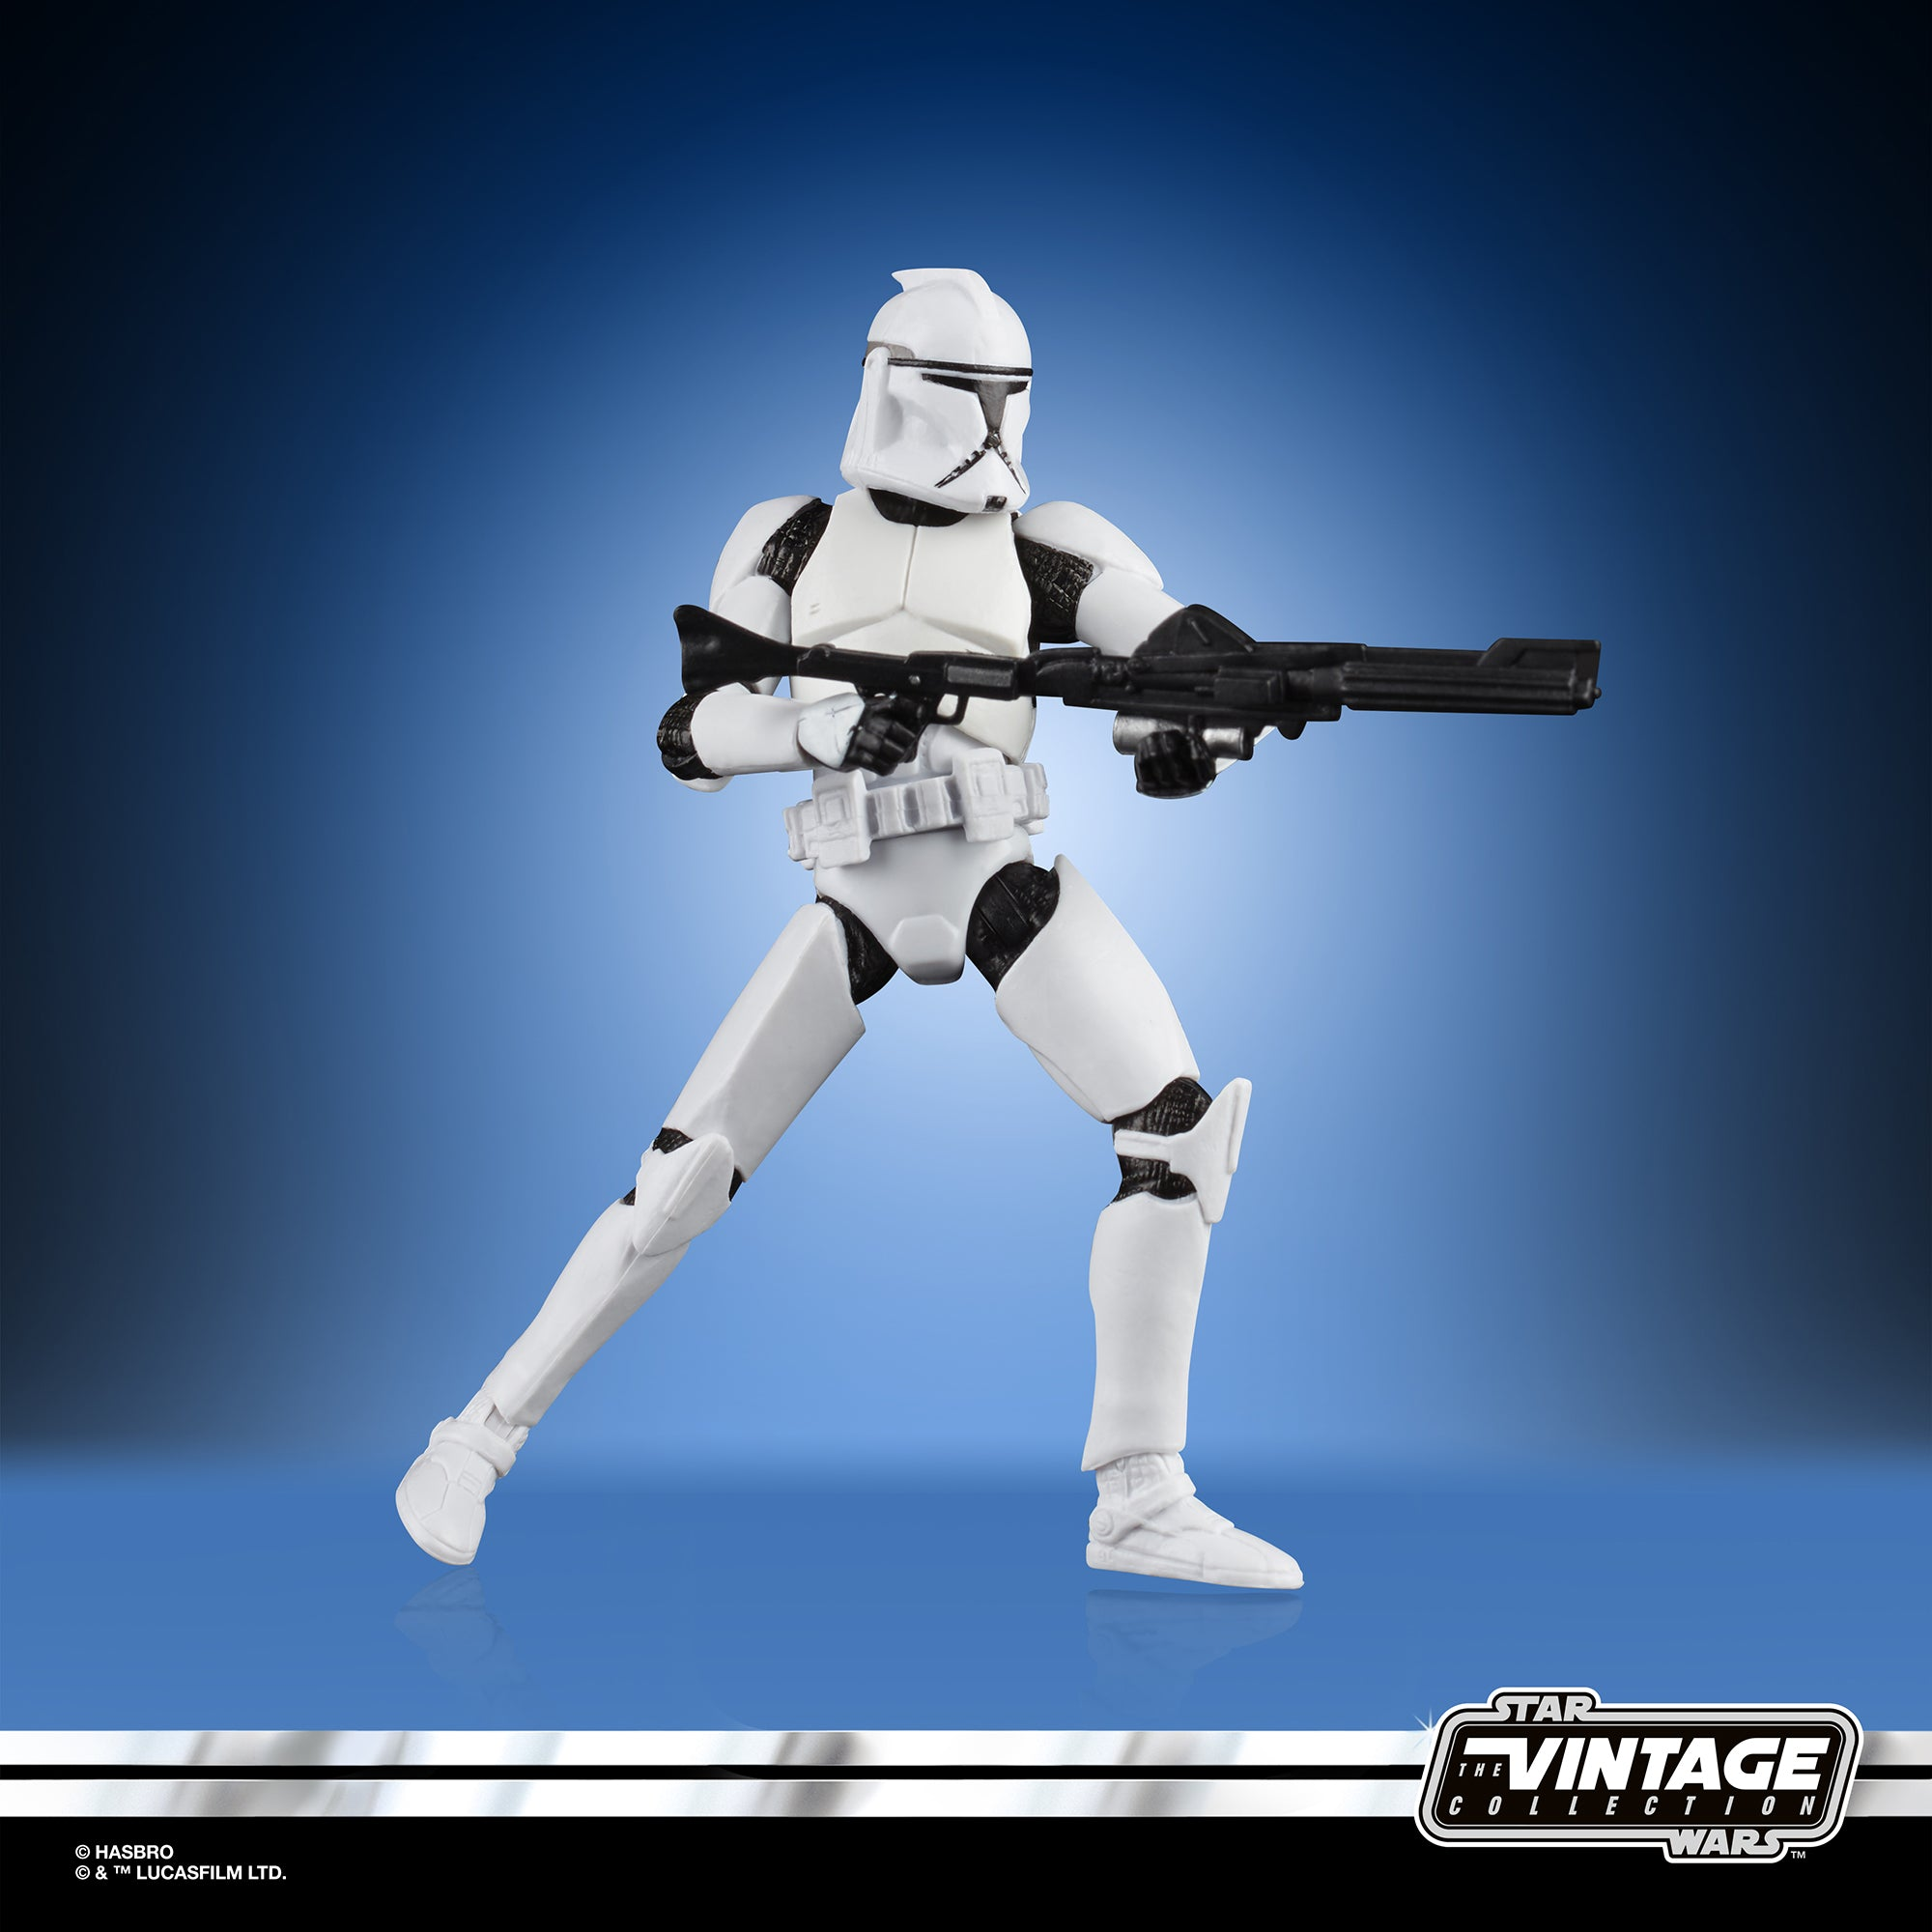 Star Wars The Vintage Collection Clone Trooper Toy Action Figure